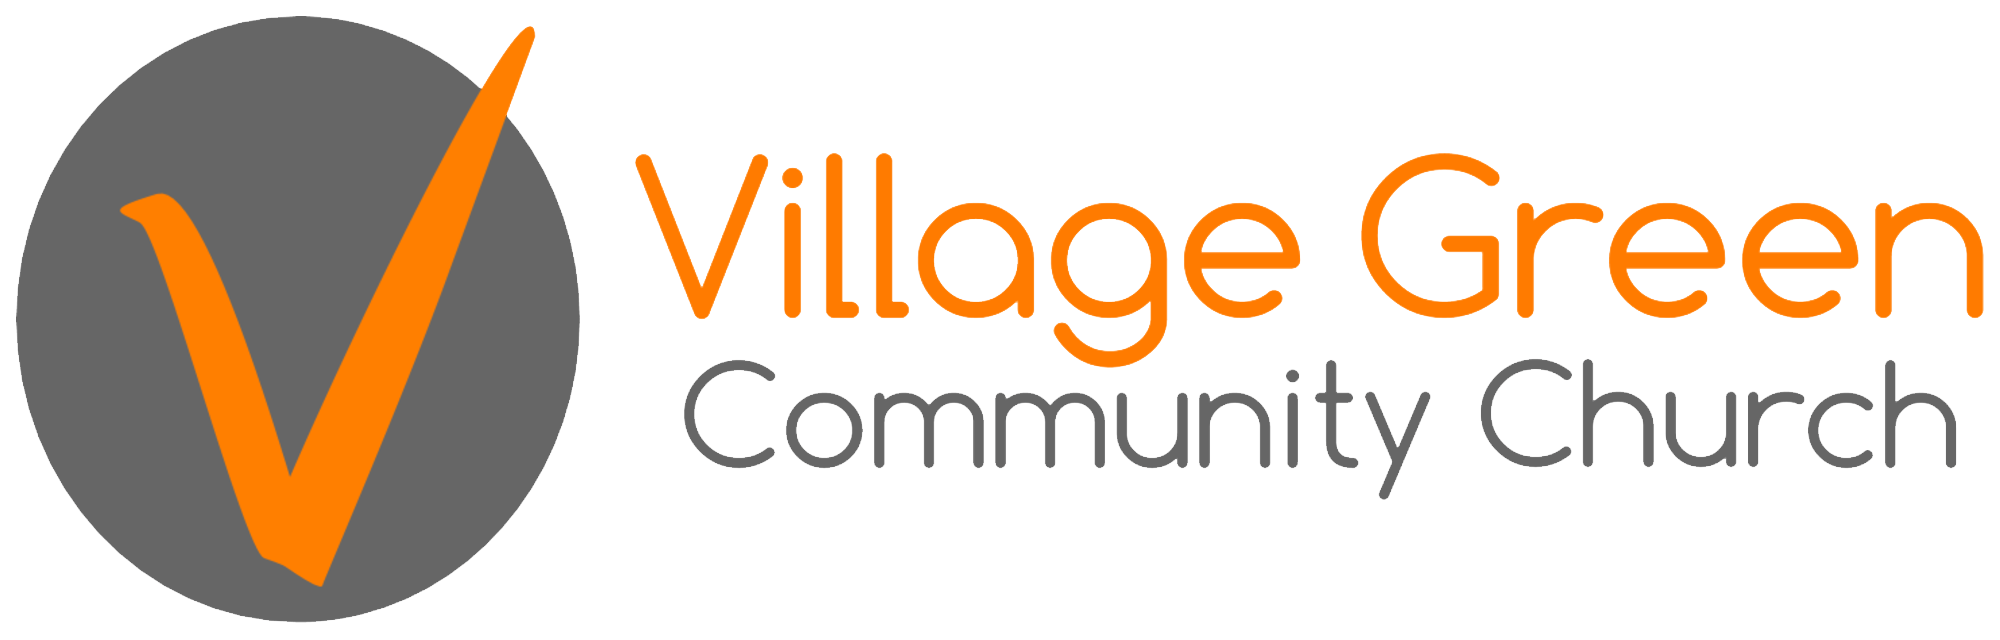 Village green community church logo